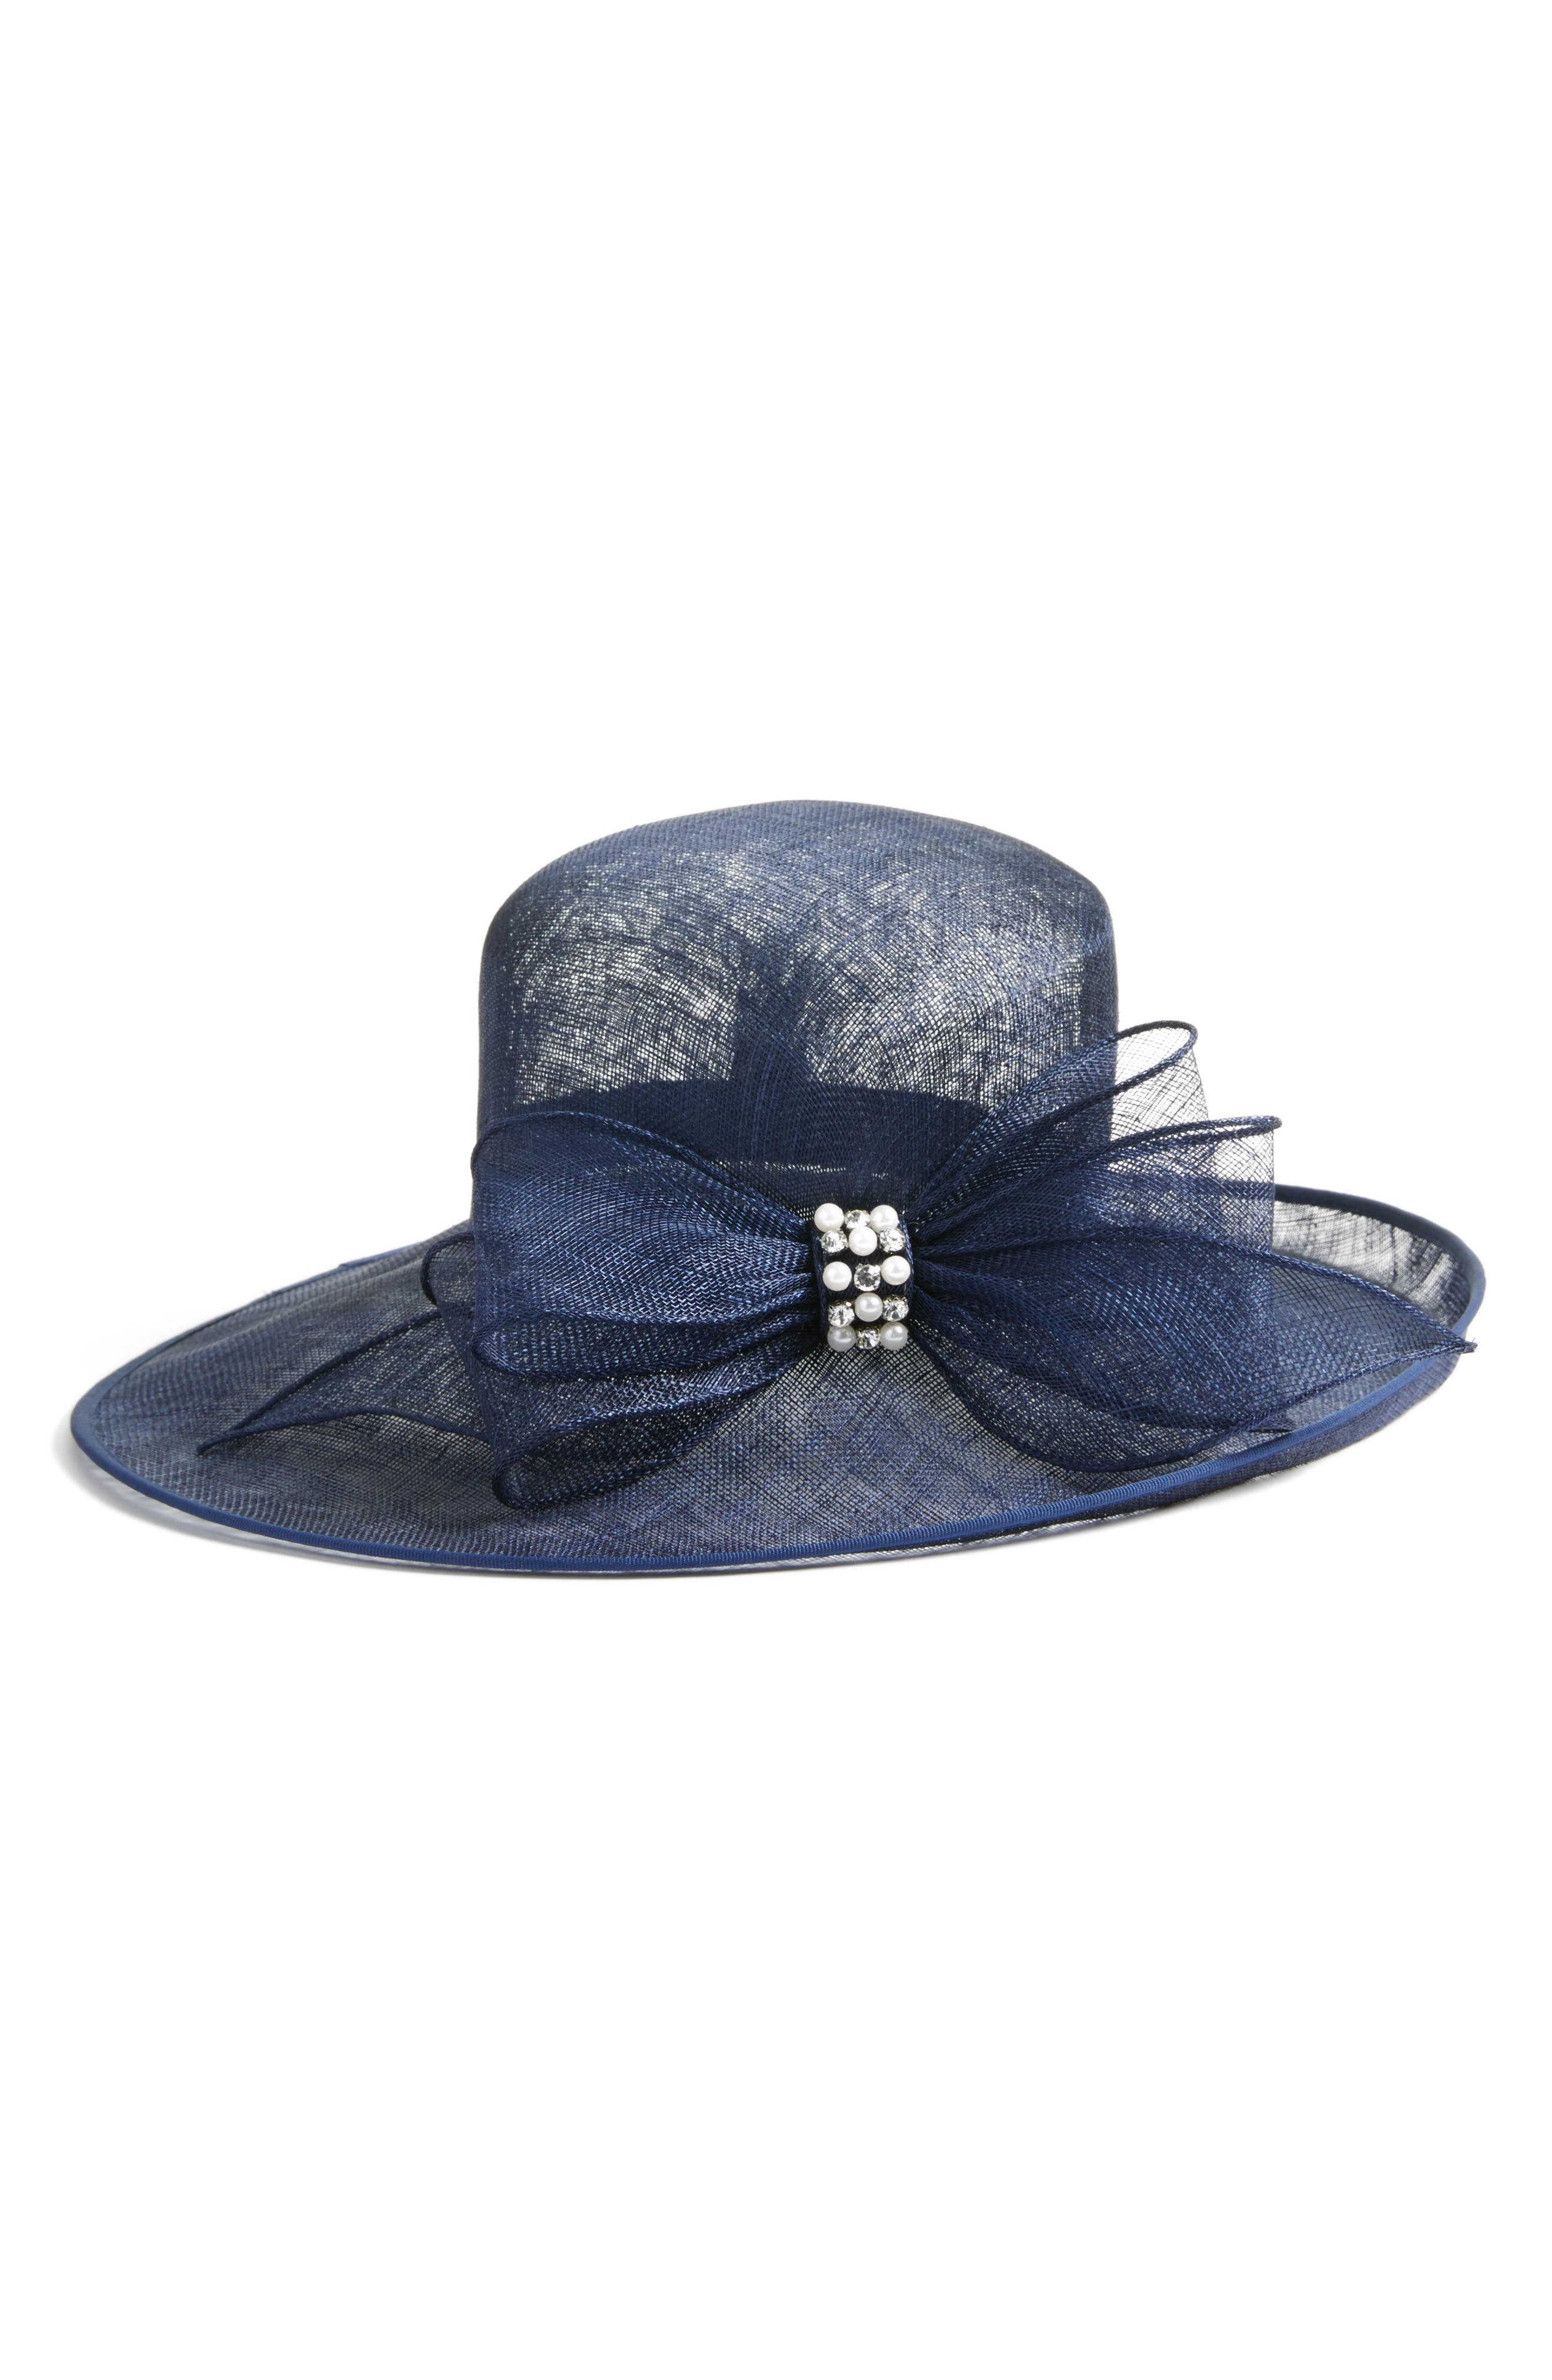 Nordstrom Jeweled Bow Hat